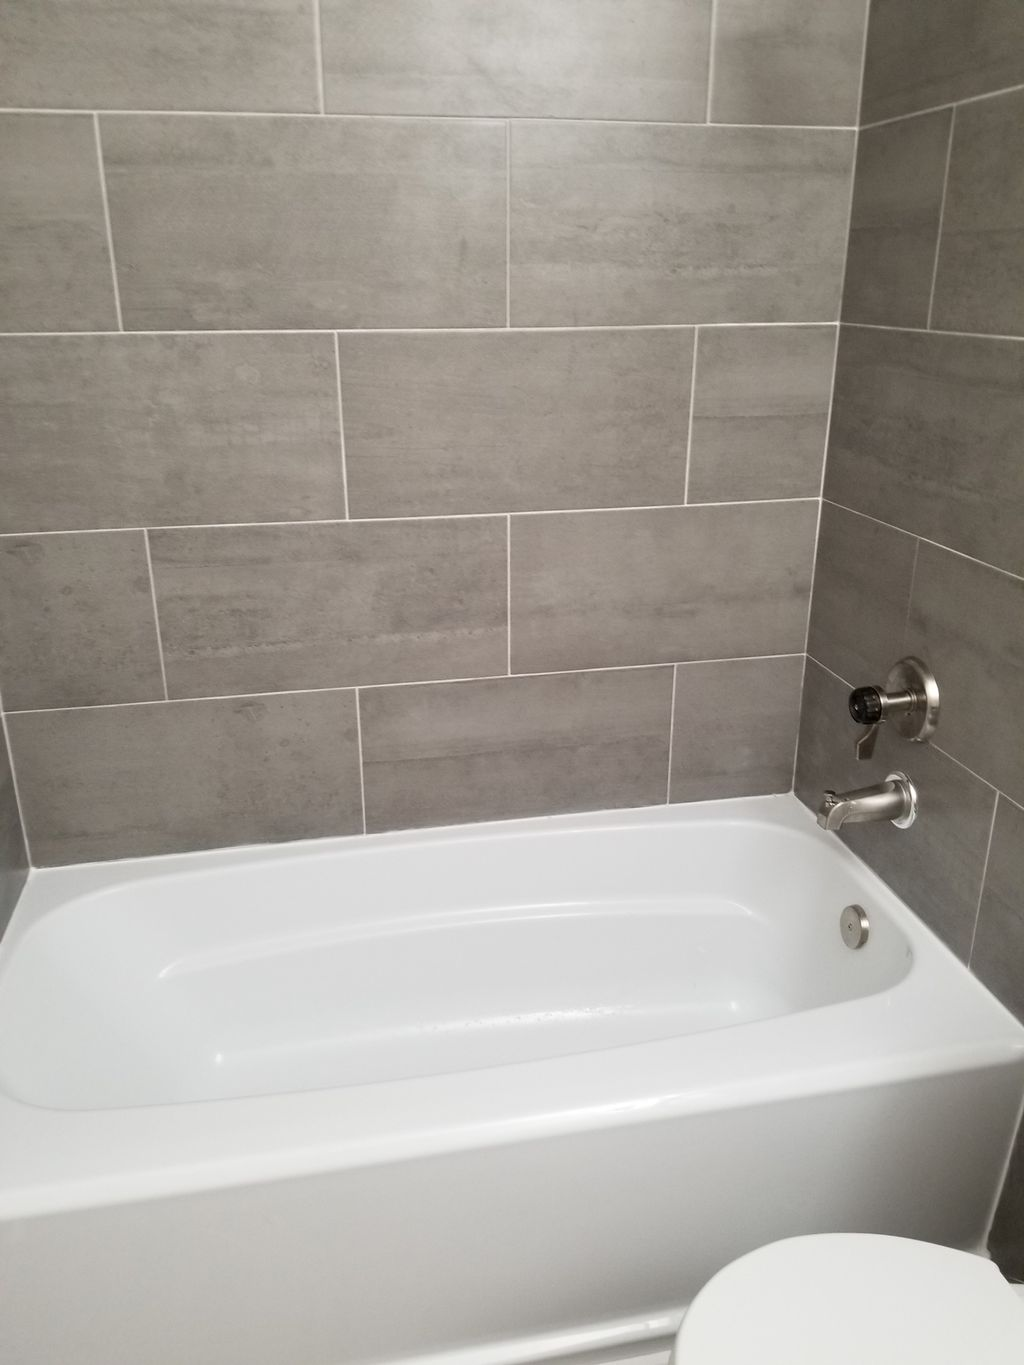 Budget Bath remodel with Demo